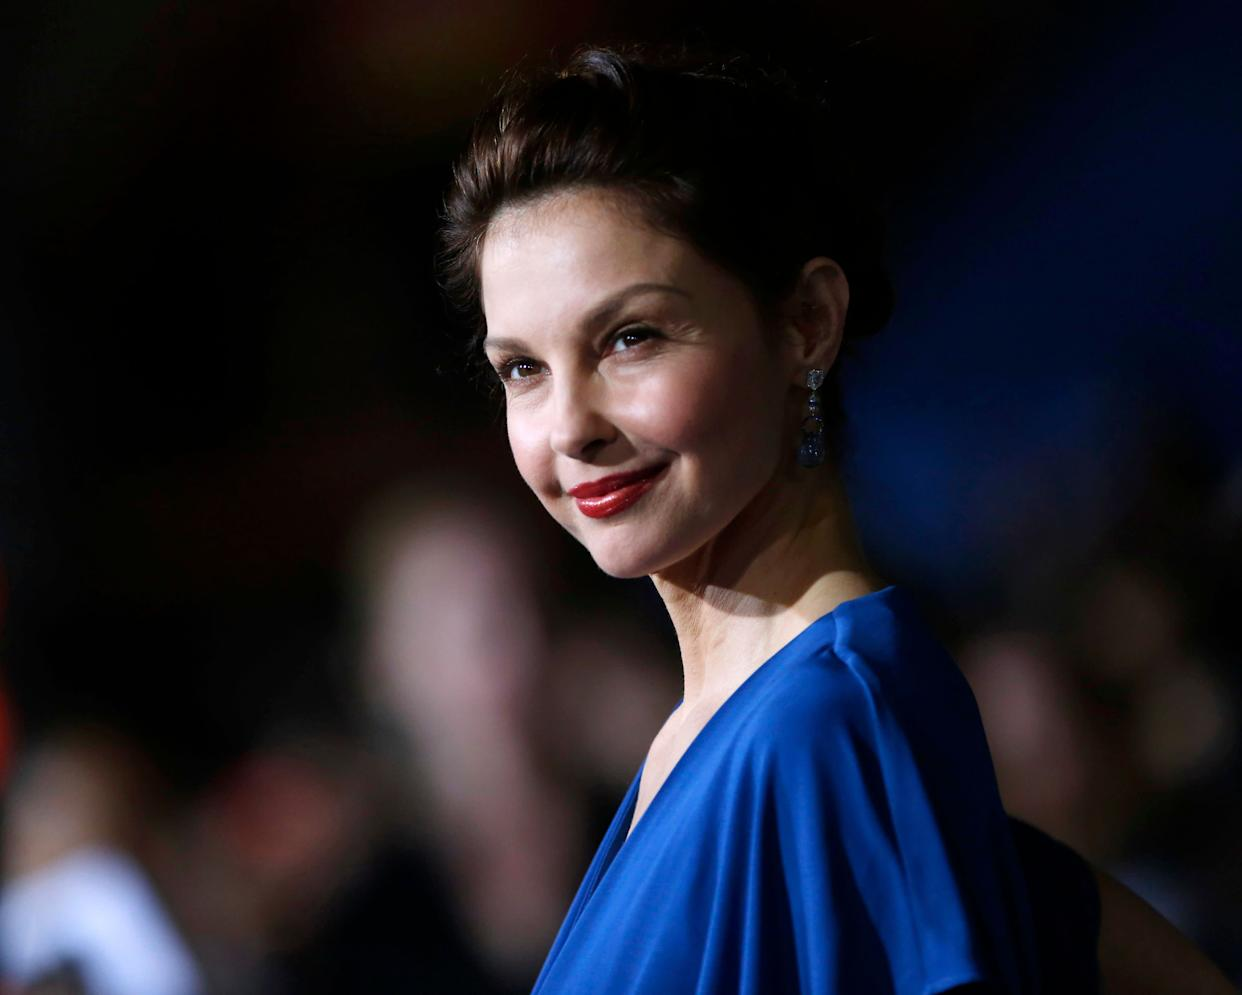 "Ashley Judd <a href=""https://www.nytimes.com/2017/10/05/us/harvey-weinstein-harassment-allegations.html"" rel=""nofollow noopener"" target=""_blank"" data-ylk=""slk:told the New York Times"" class=""link rapid-noclick-resp"">told the New York Times</a>&nbsp;that Harvey Weinstein&nbsp;invited her to his hotel room and asked her if&nbsp;he could give her a massage or if she wanted to watch him shower.&nbsp;<br><br>She told the Times that she thought, &ldquo;How do I get out of the room as fast as possible without alienating Harvey Weinstein?&rdquo;&nbsp;"